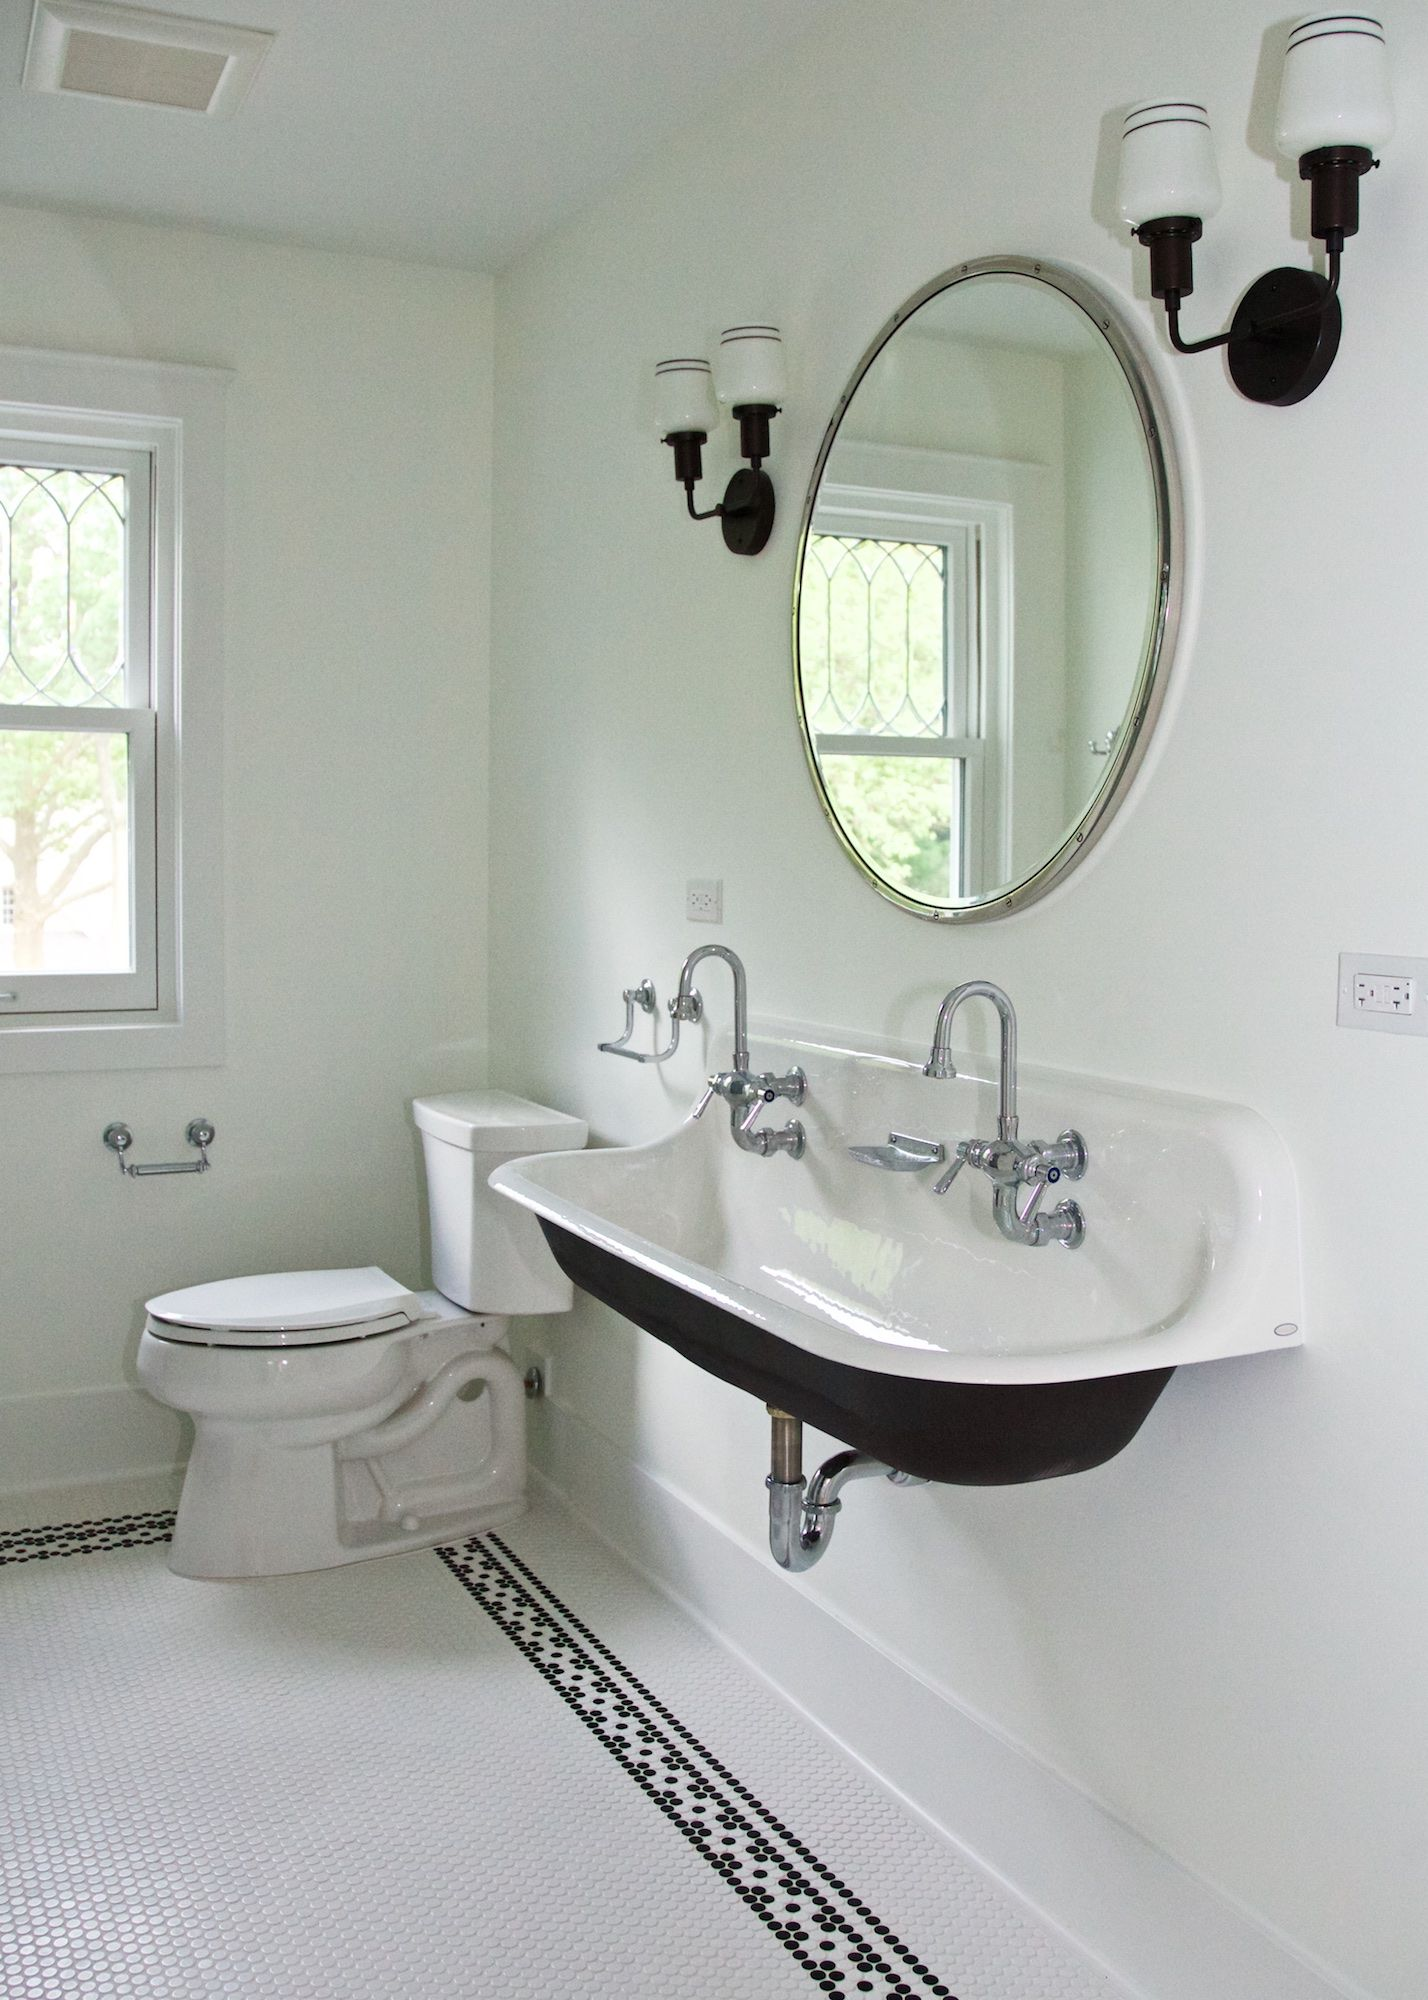 Vintage Inspired Bathroom With Trough Sink And Circle Mirror